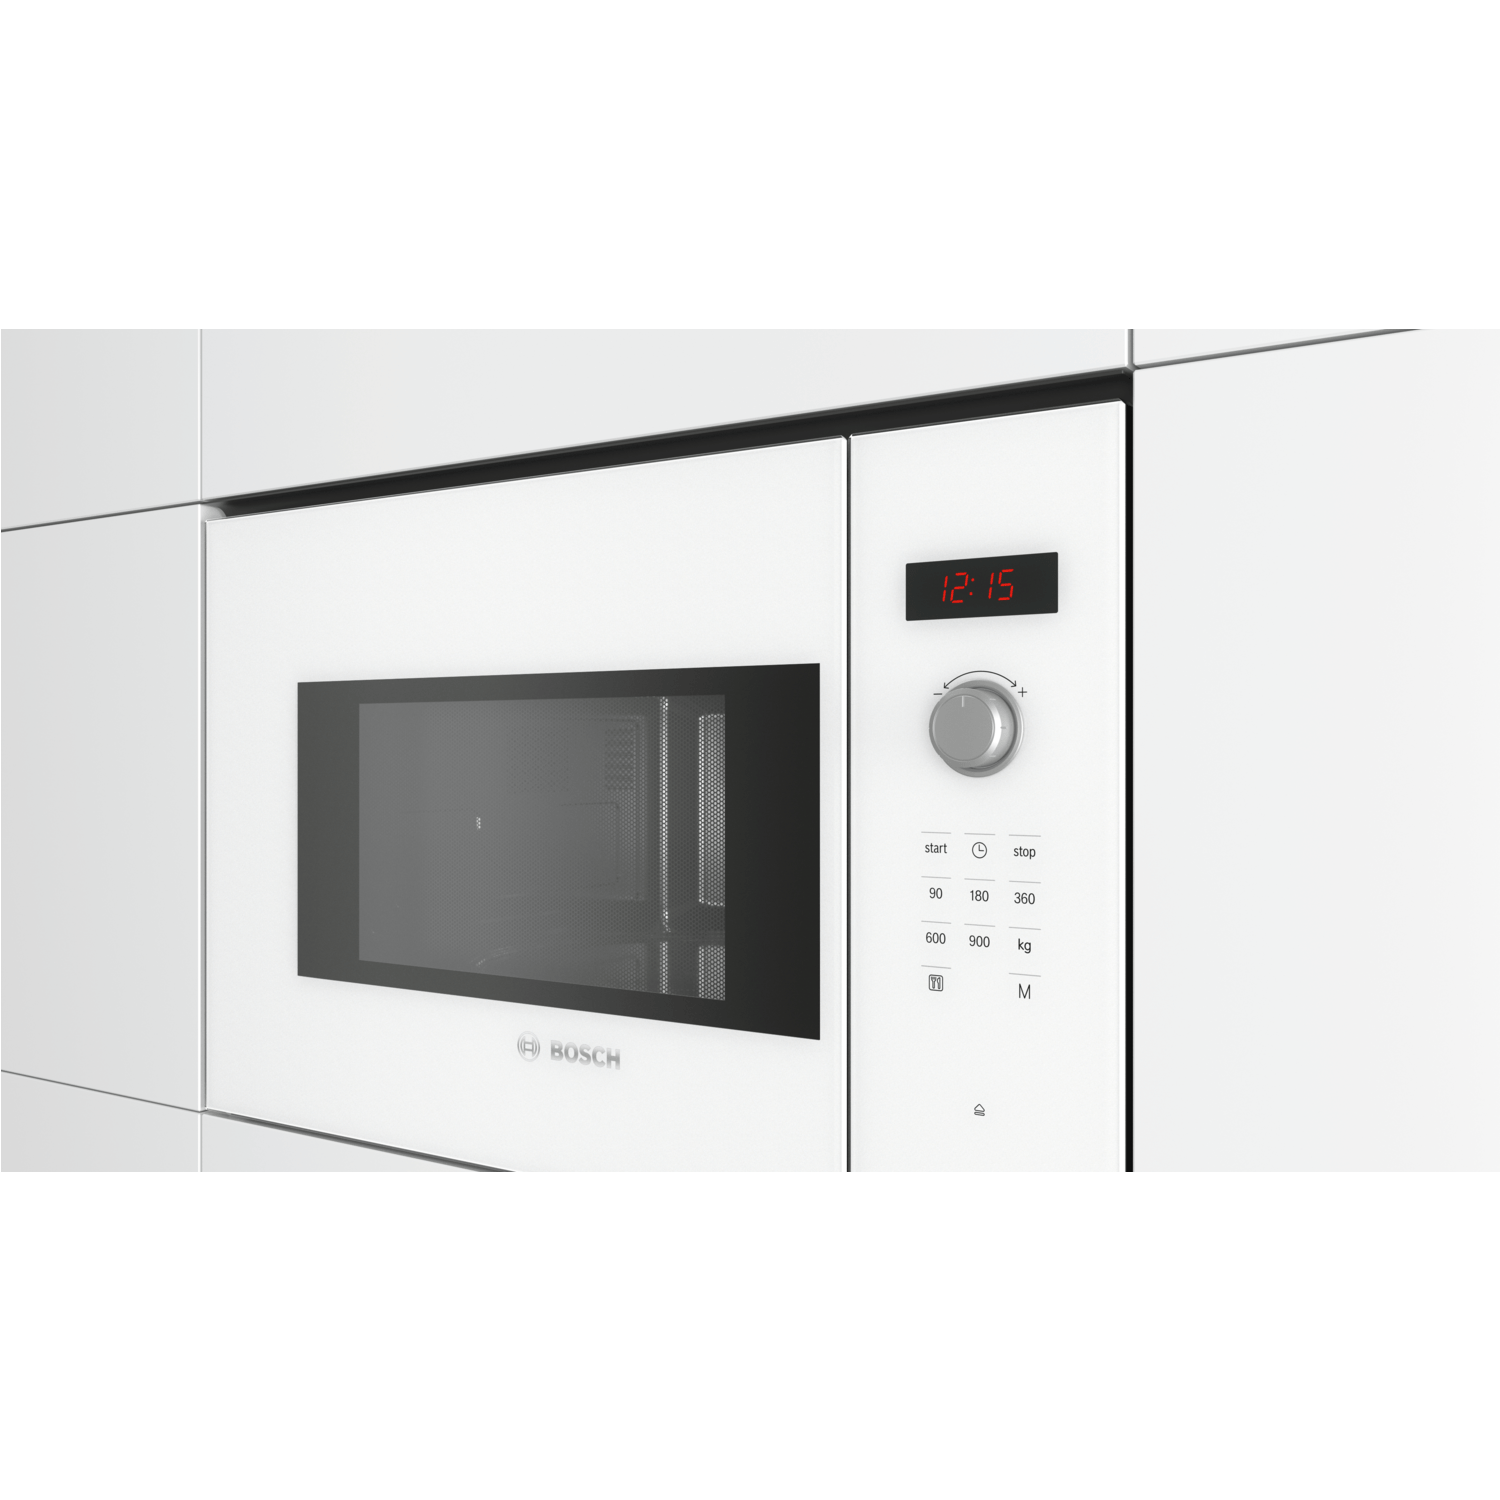 bosch bfl553mw0b serie 4 900w 25l built in microwave oven white